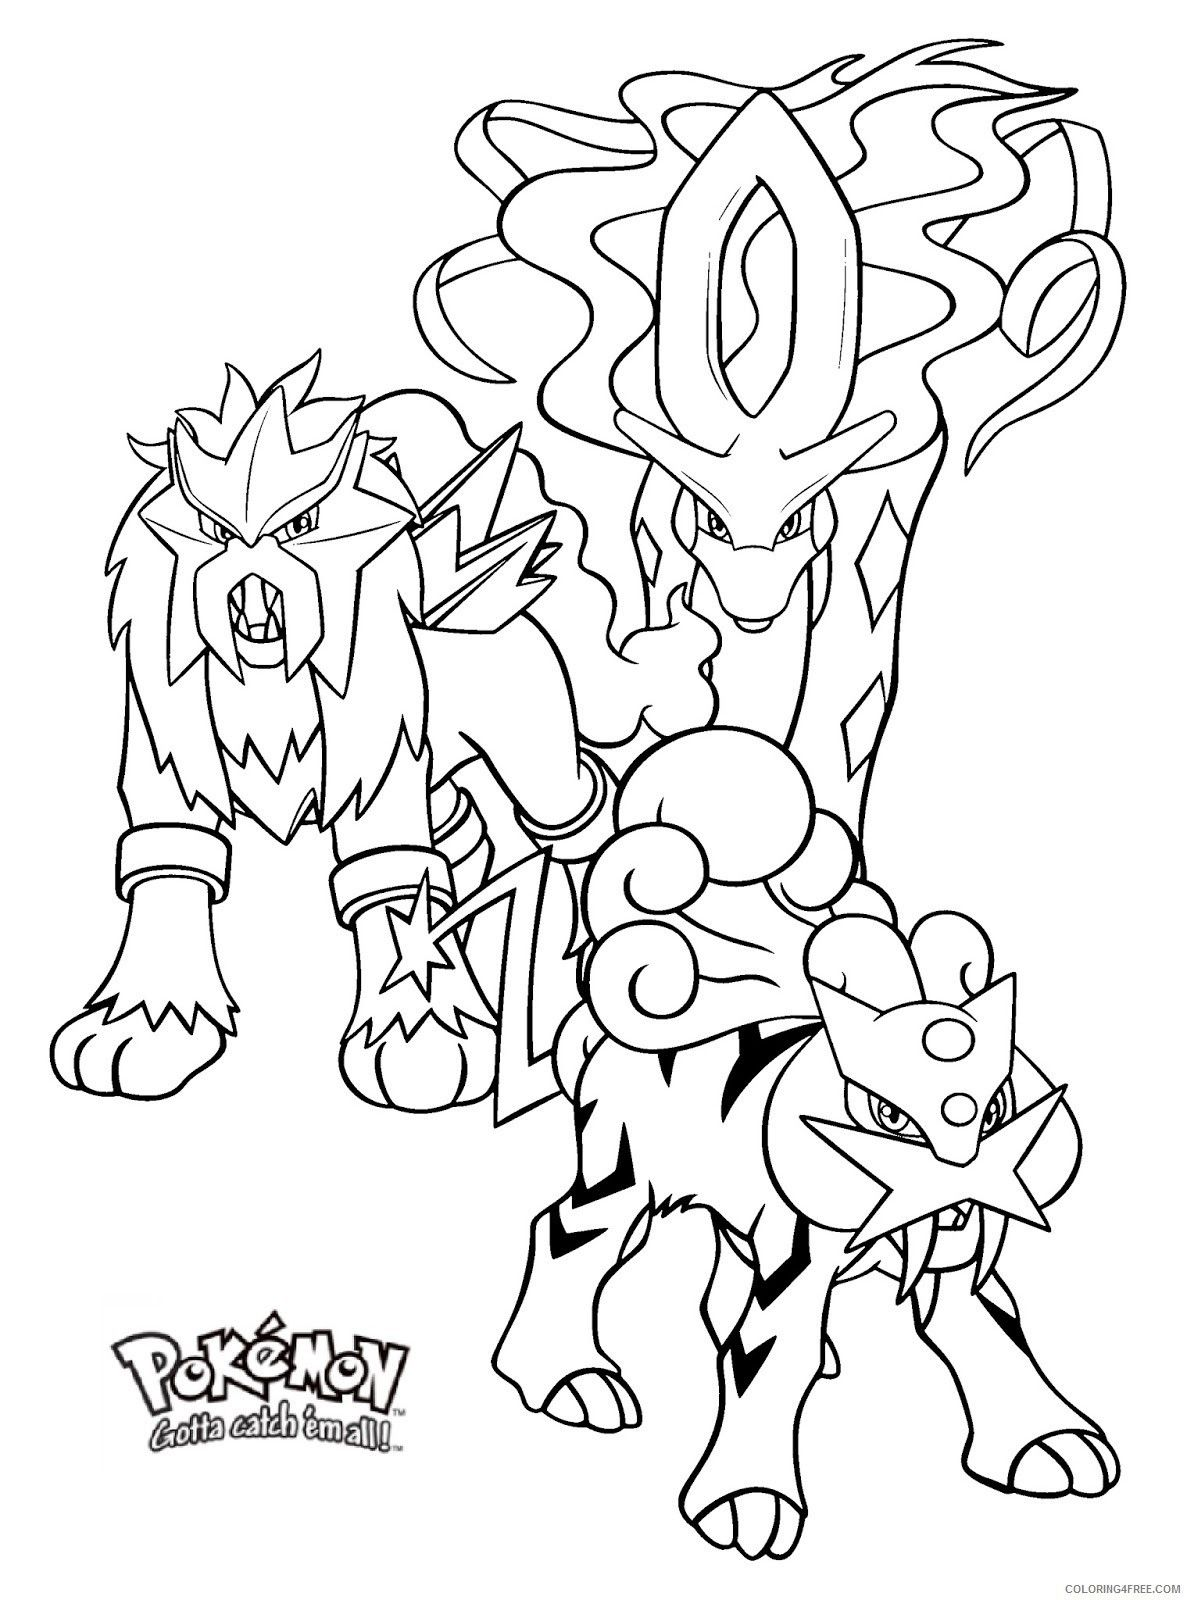 Pokemon Raikou Coloring Pages From The Thousand Photos On The Web With Regards To Pokemon Raik Pokemon Coloring Pages Pokemon Coloring Cartoon Coloring Pages